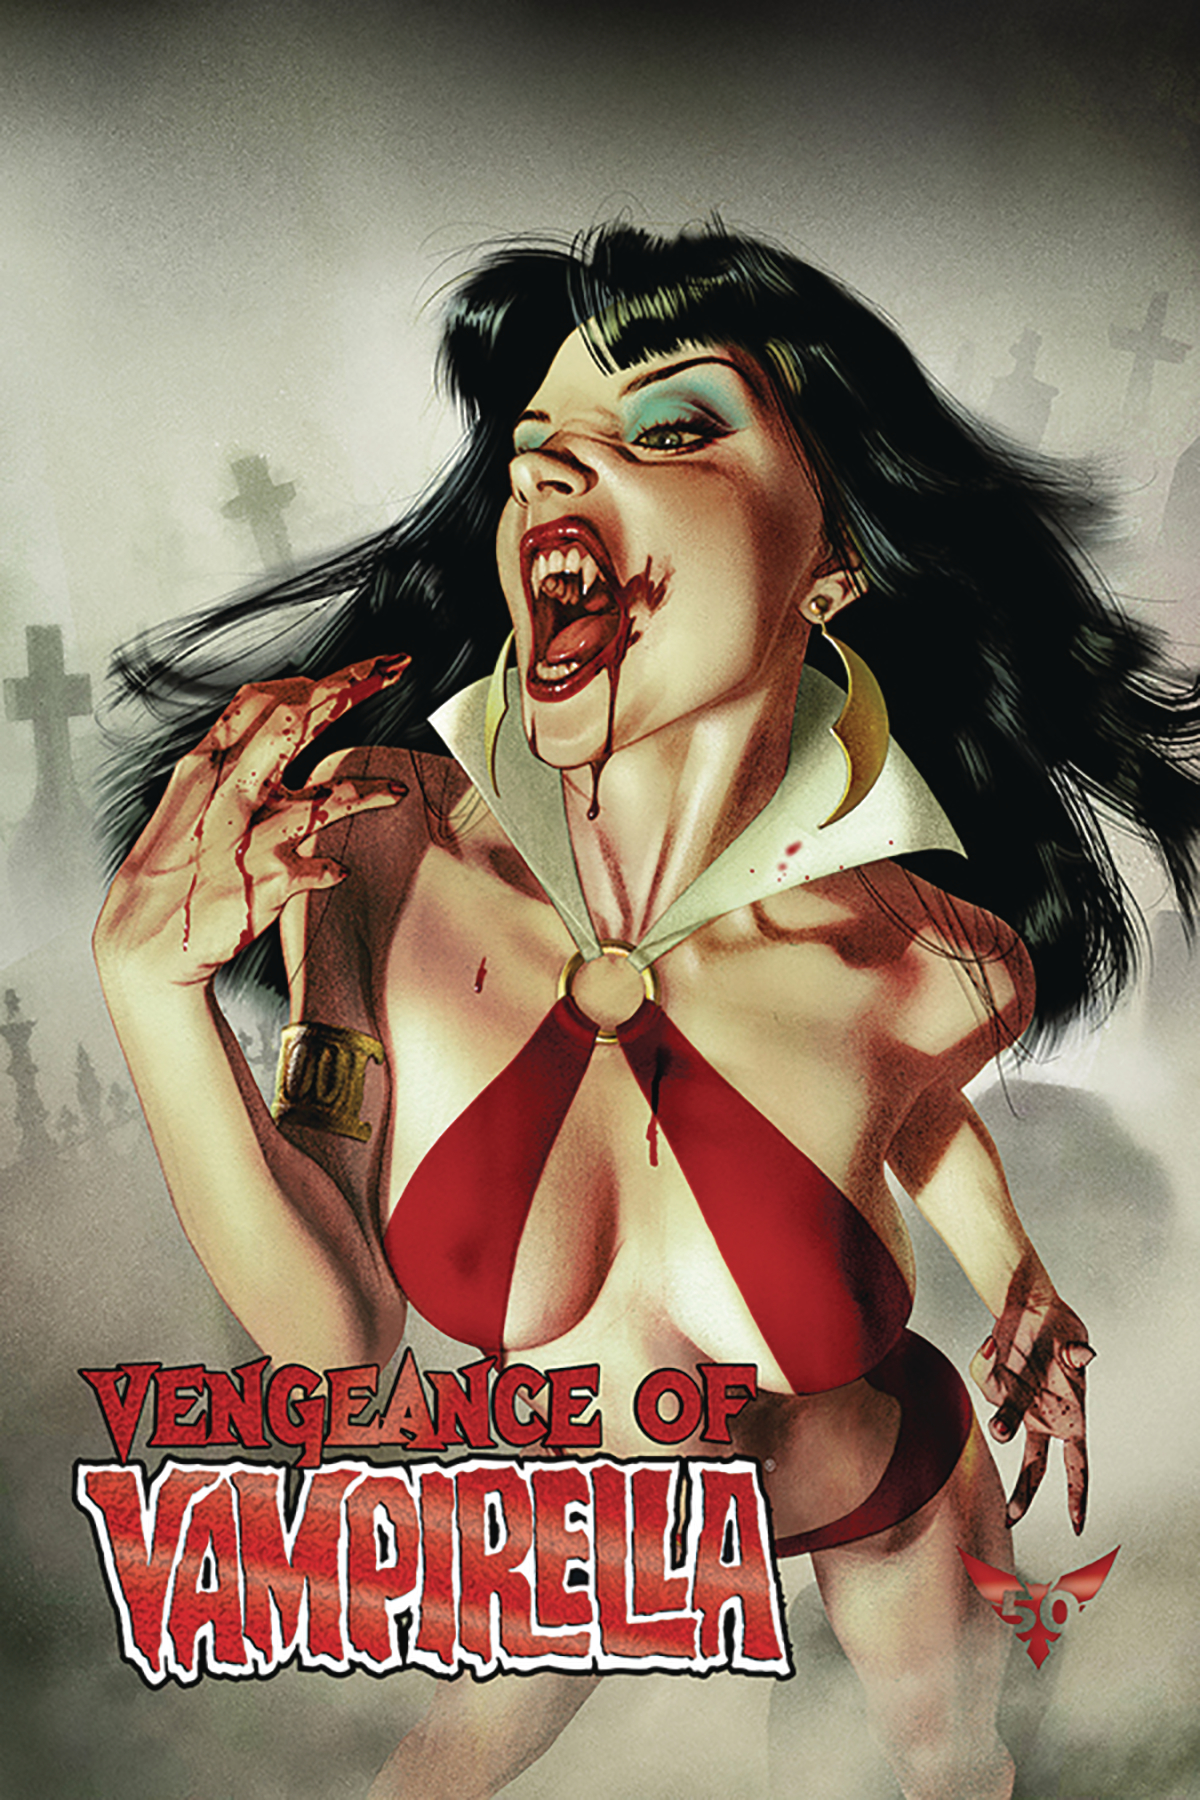 VENGEANCE OF VAMPIRELLA #1 MIDDLETON RED FOIL LTD CVR